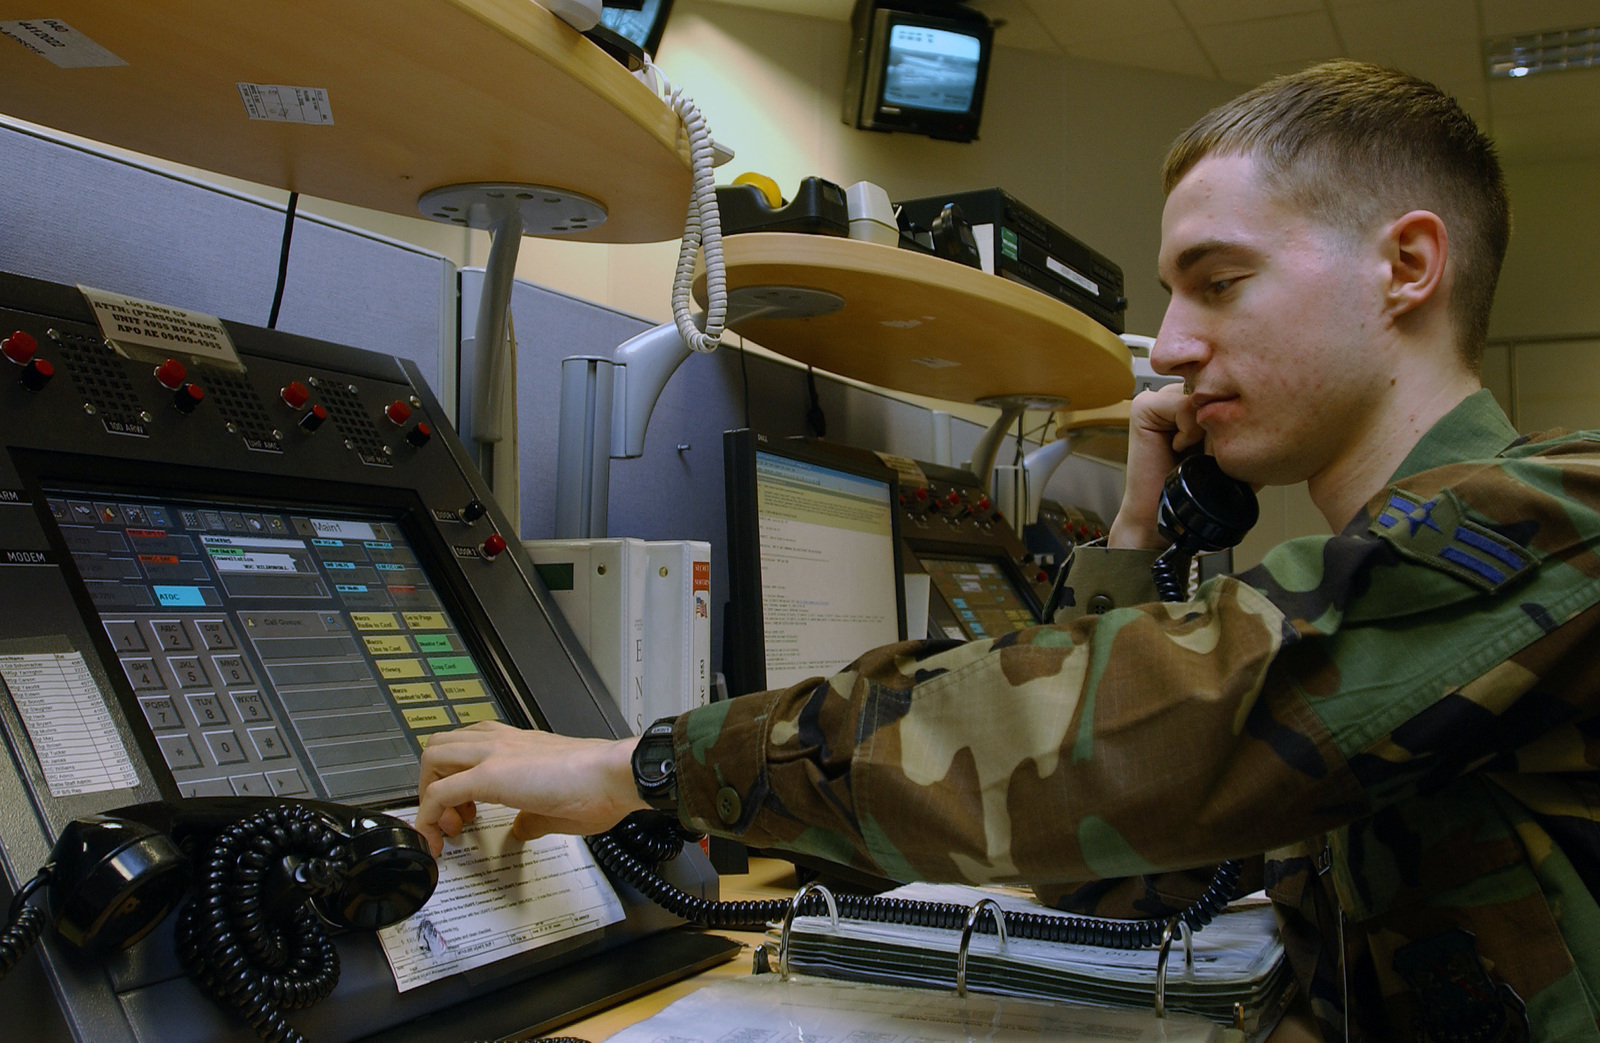 U.S. Air Force (USAF) AIRMAN 1ST Class Chad Henry, a junior emergency actions controller from the from the 352nd Special Operations Group, routes telephone and radio communications among the base leadership at the Maintenance Operations Center at Royal Air Force Mildenhall, England on Dec. 16, 2004. The command post and the maintenance operations center conduct crucial operations 24 hours a day. (USAF PHOTO by TECH. SGT. Michael D. Morford) (Released)